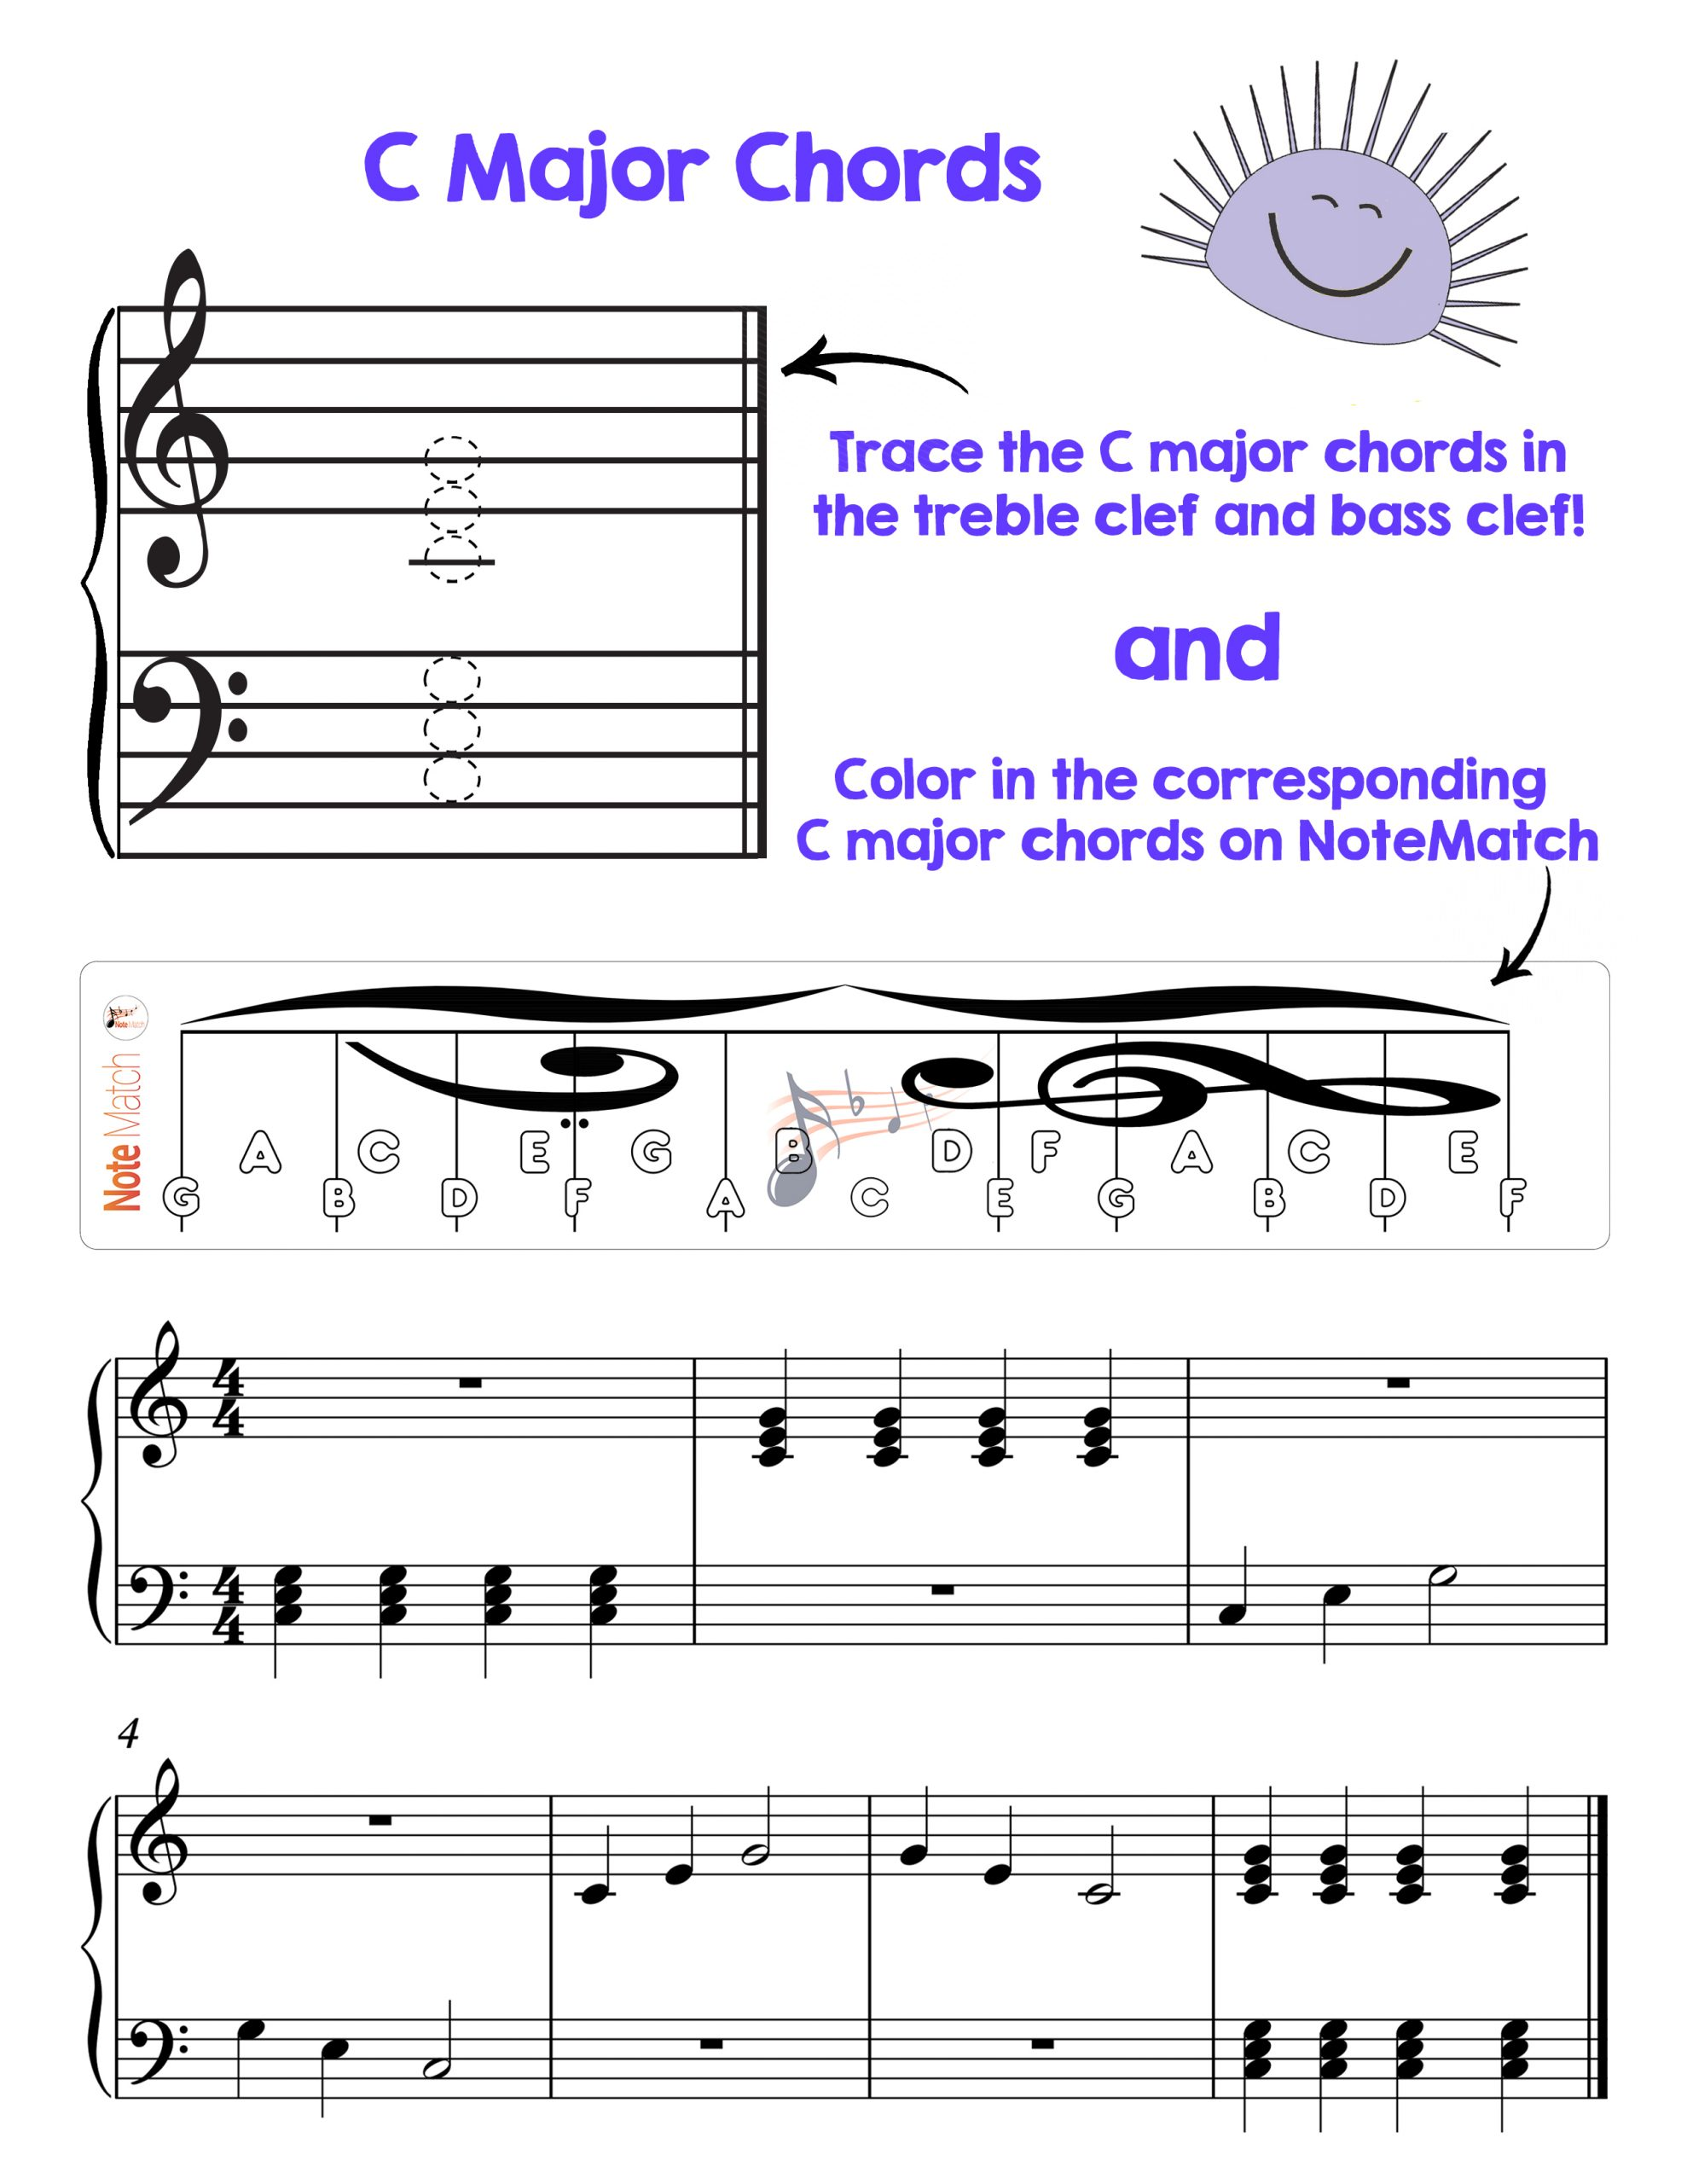 C Major Chords final page